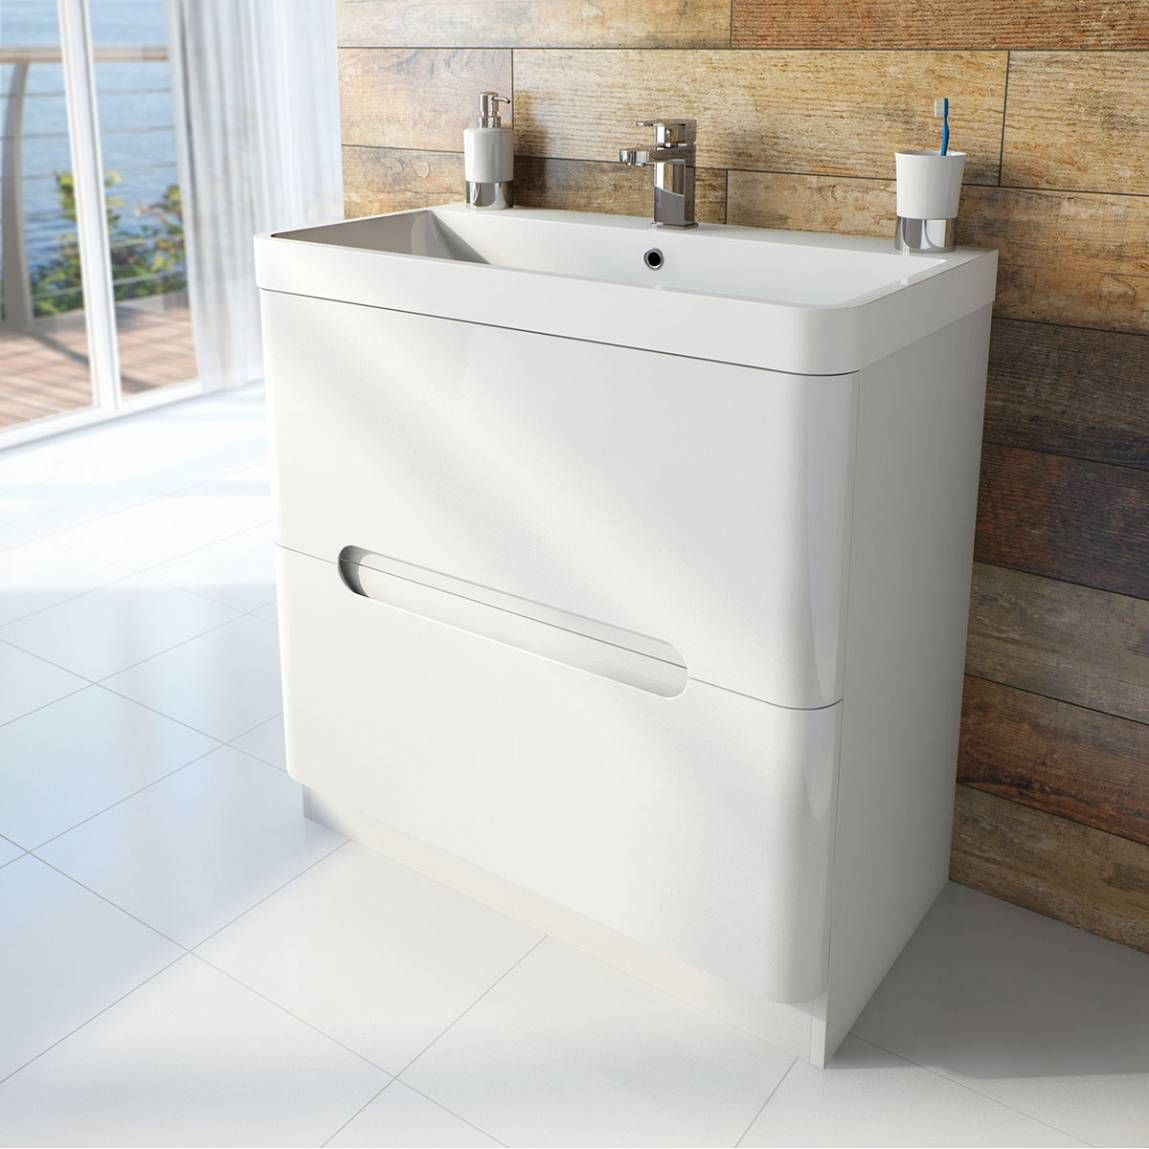 Bathroom Accessories Victoria Plumb planet select white floor mounted 800 drawer unit & basin